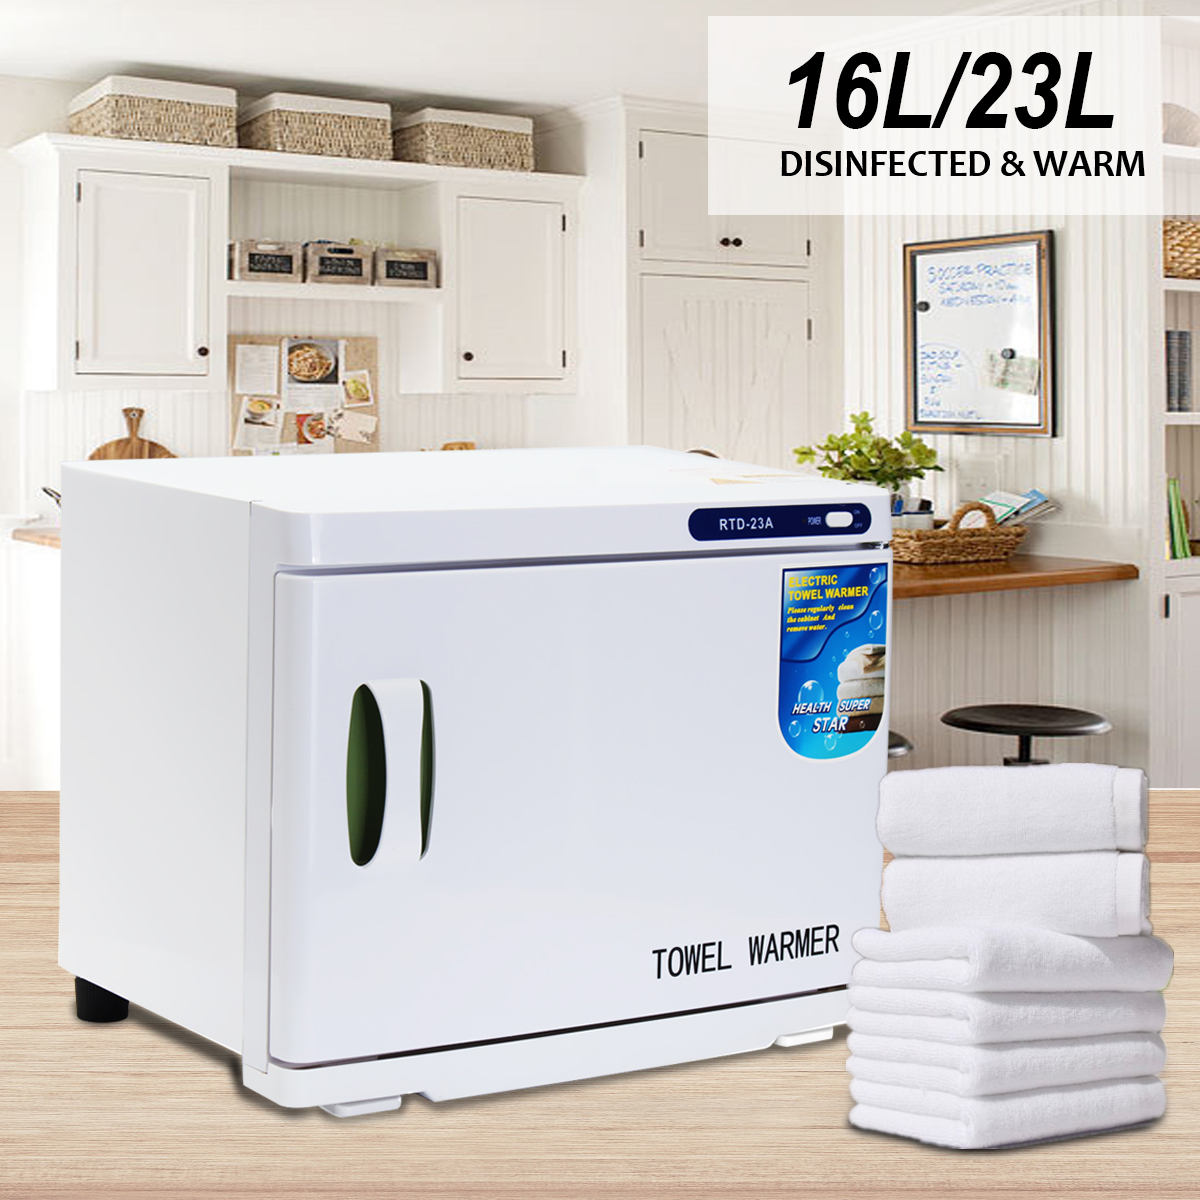 UV Light Electric Towel Warmer Towel Disinfection Cabinet Sterilizer Facial Salon Spa Towel Machine Hot Towel Cabinet 23L AU/US